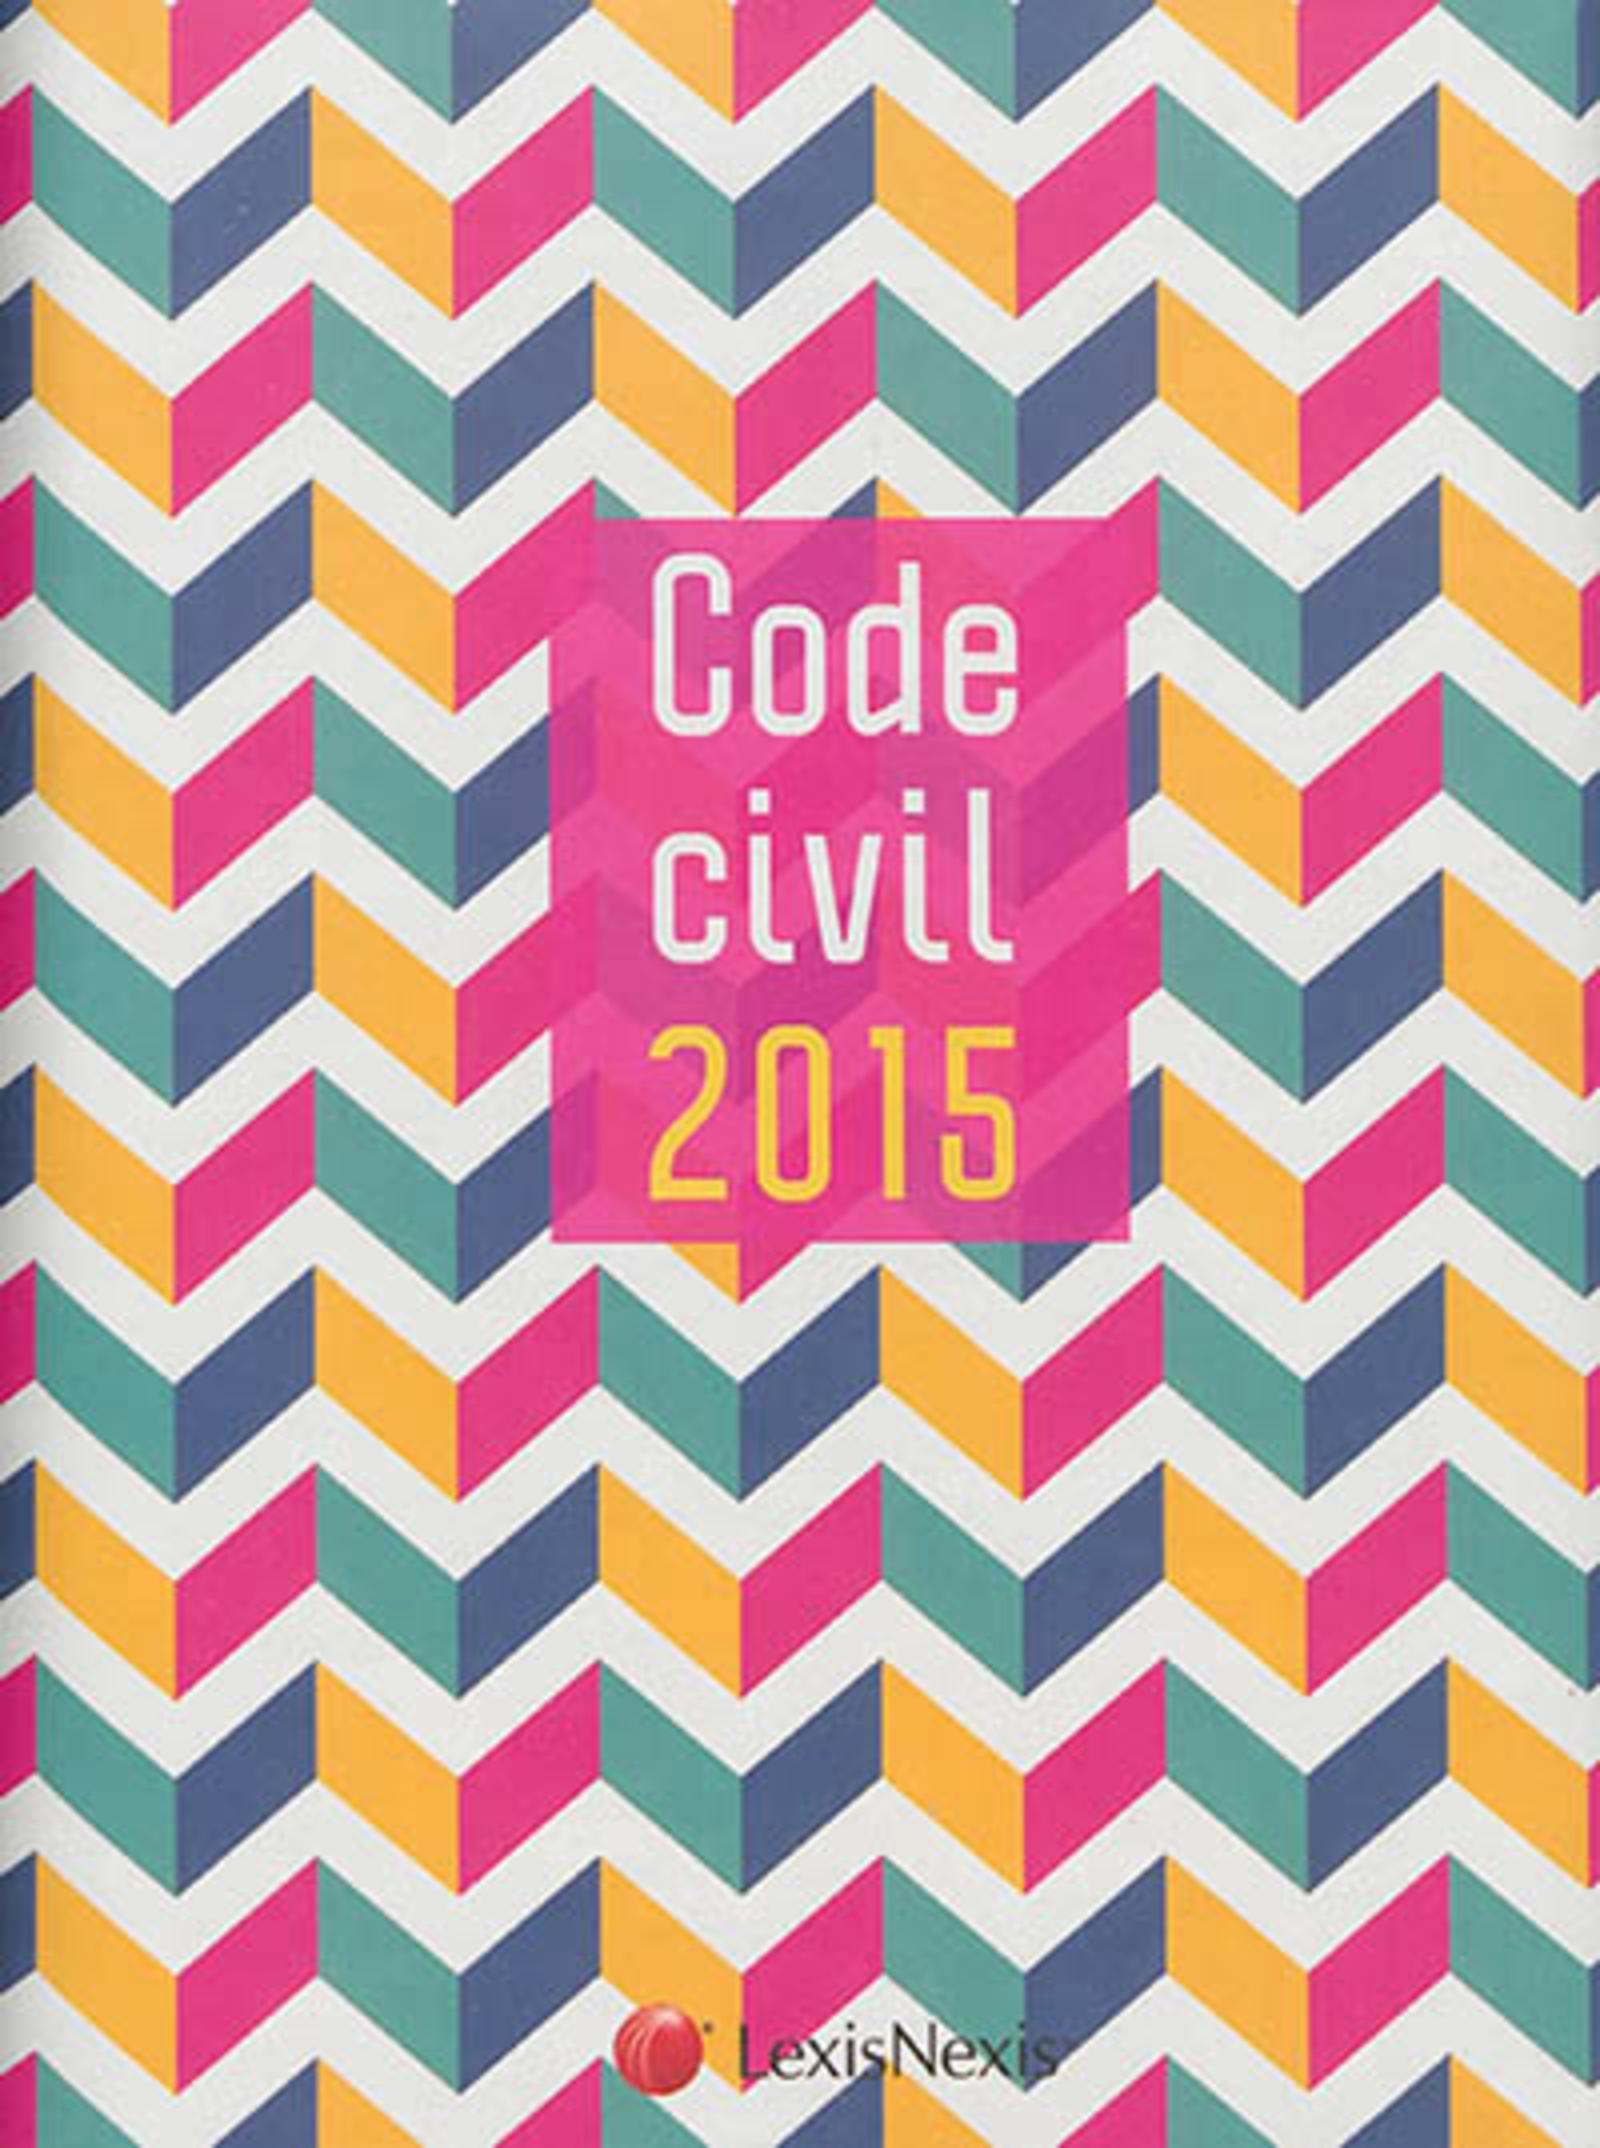 CODE CIVIL 2015 GRAPHIC